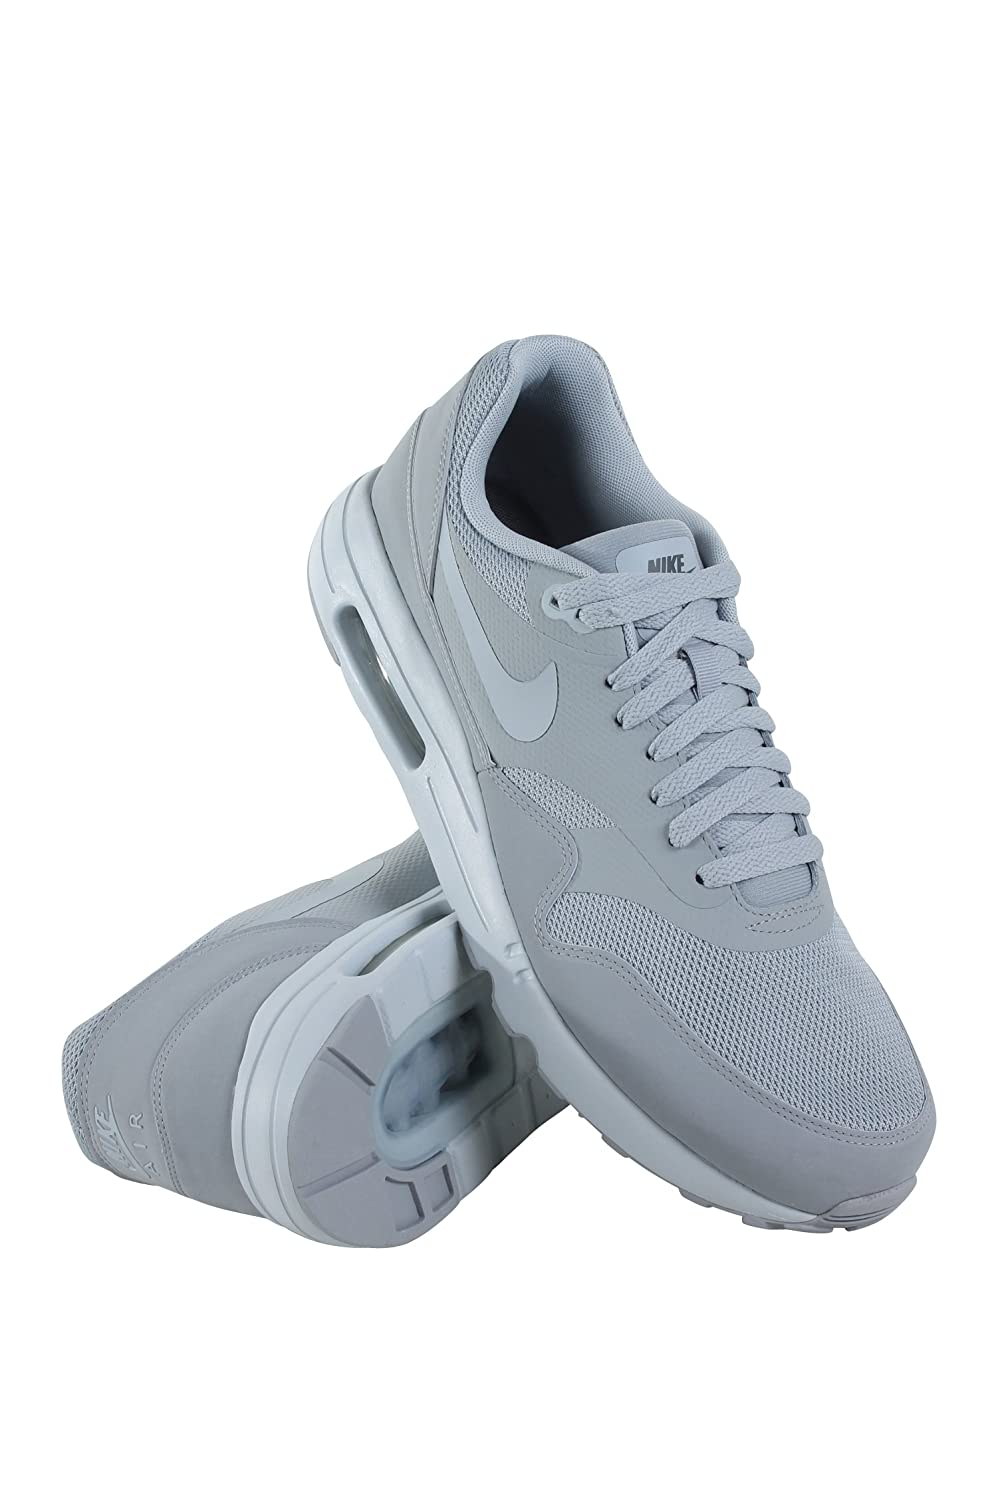 Nike Mens Air Max 1 Ultra 2.0 Essential Casual Shoes Gray 14 Medium (D)